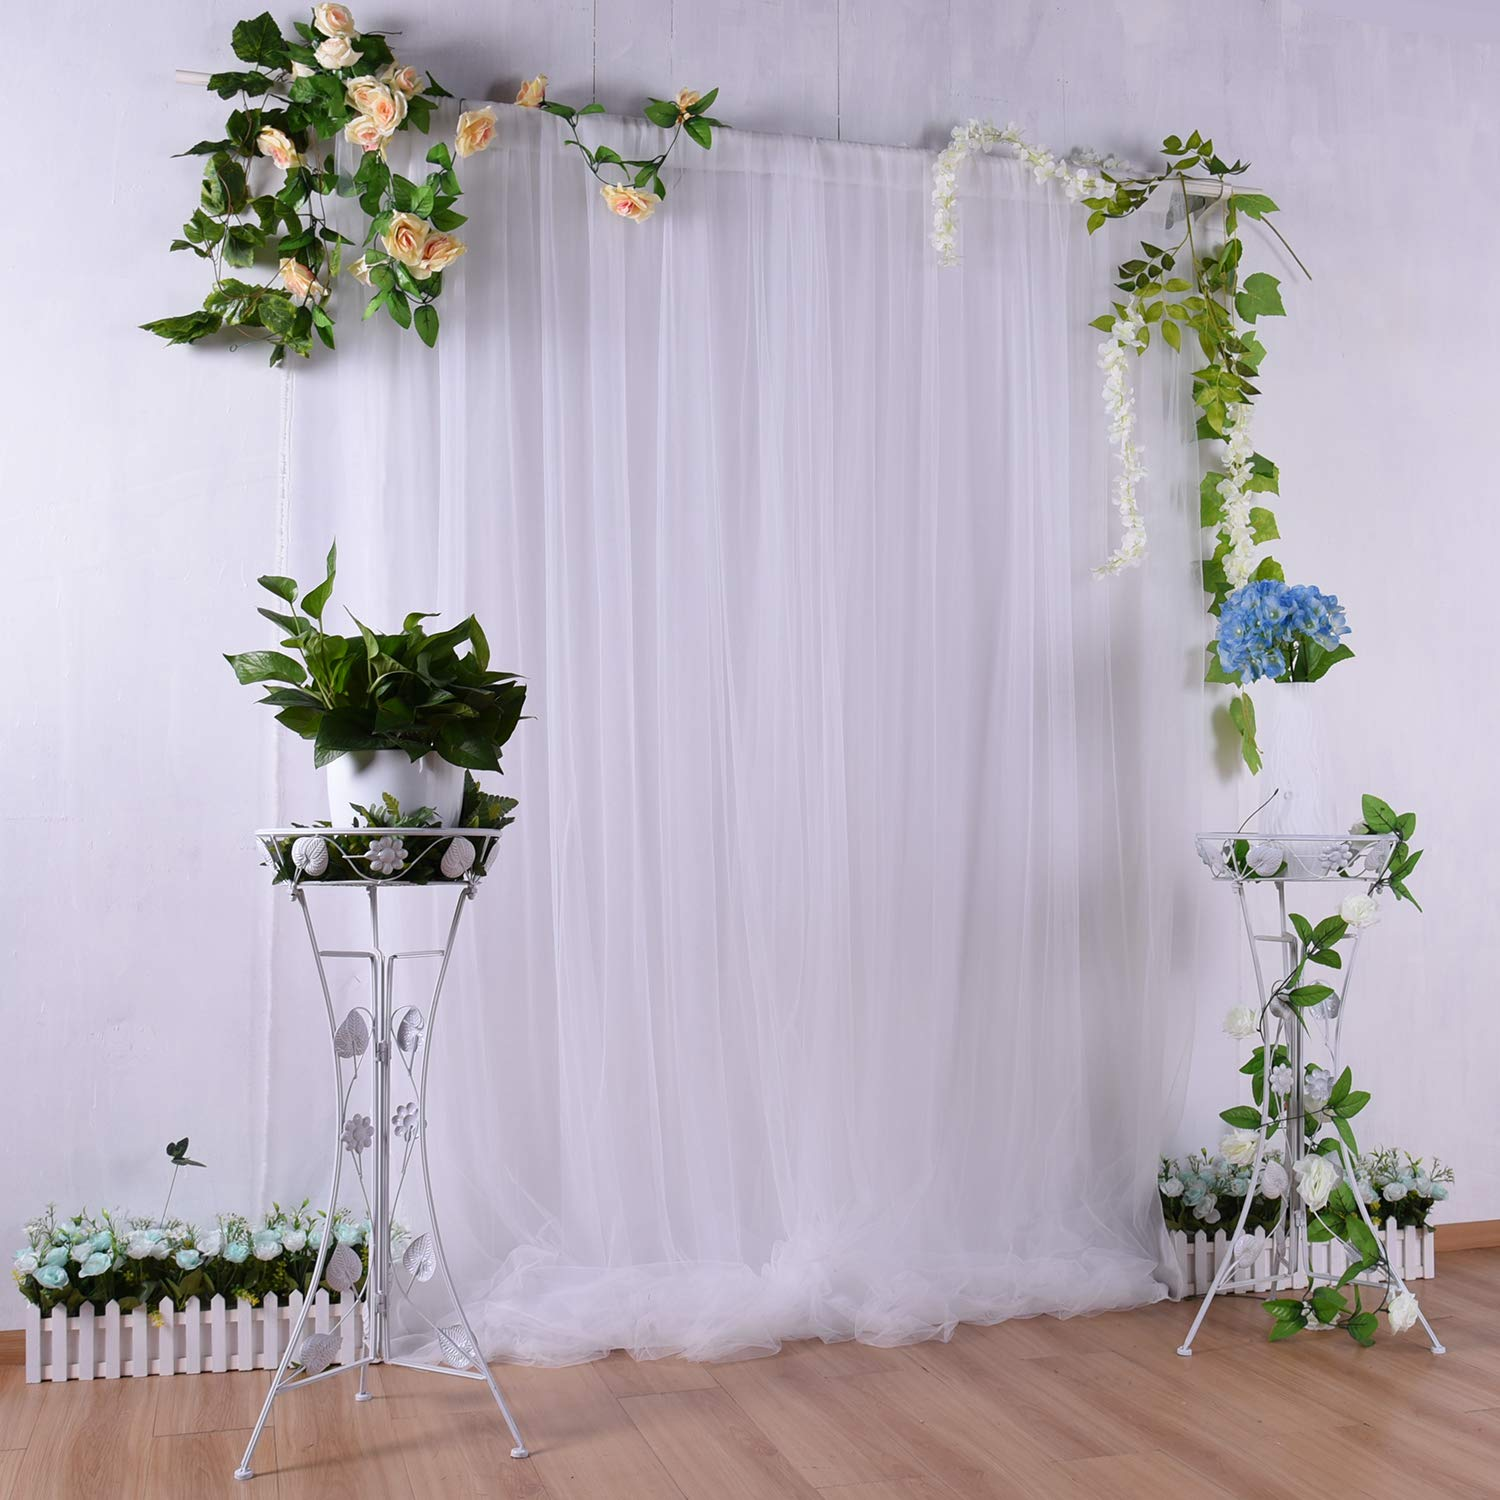 White Tulle Backdrop Curtain 5ft×7ft for Wedding Baby Shower Decorations Photography Background Party Decorations Supplies by CO-AVE